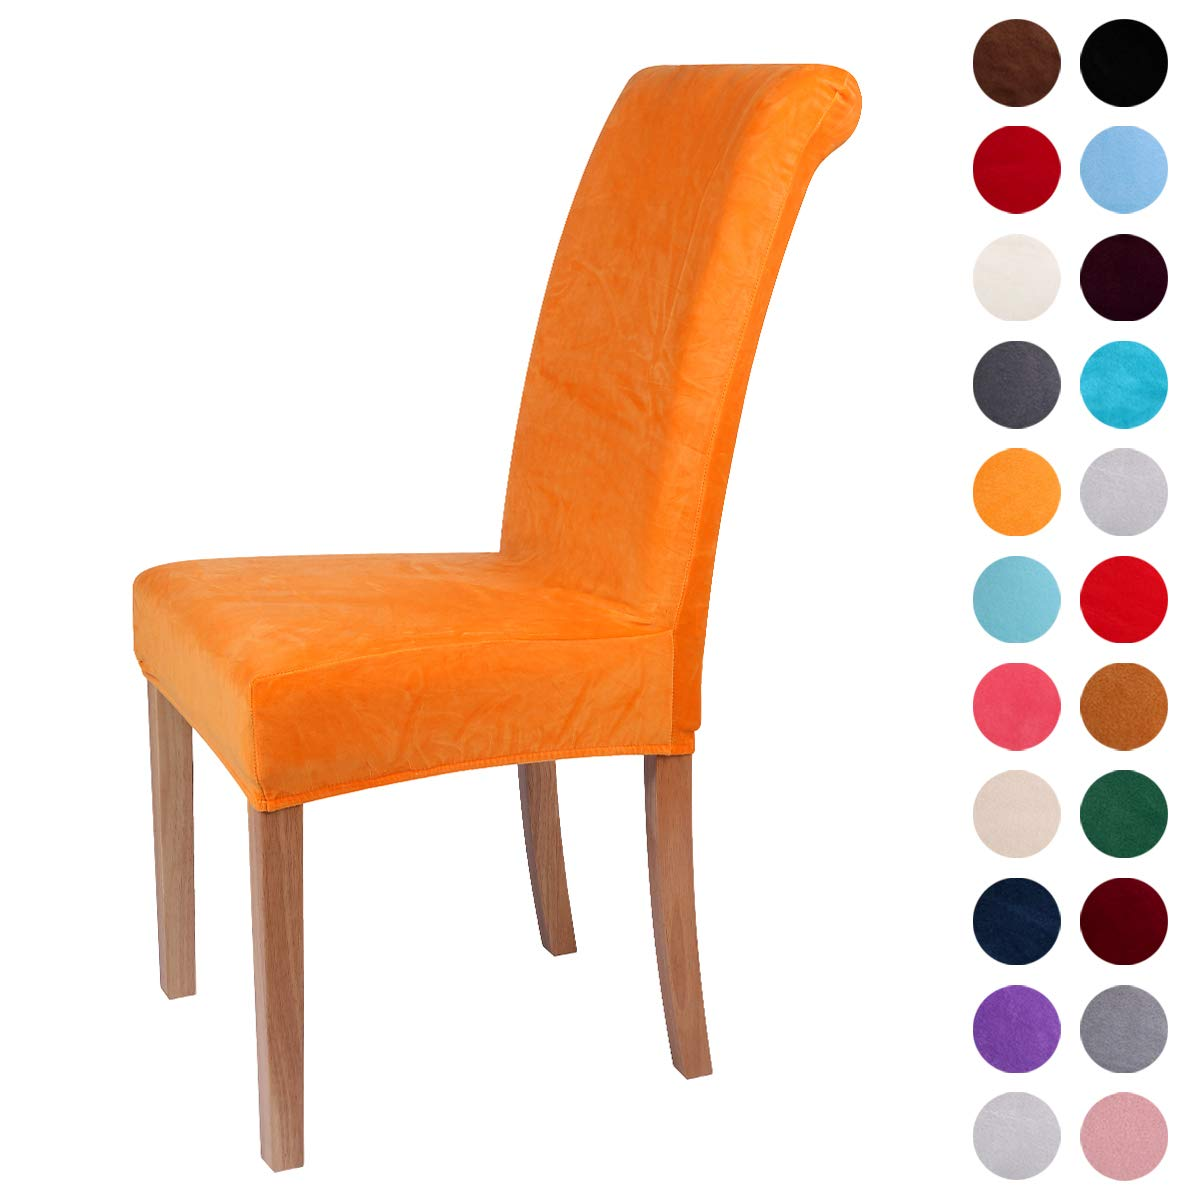 Colorxy Velvet Spandex Fabric Stretch Dining Room Chair Slipcovers Home Decor Set of 4, Orange